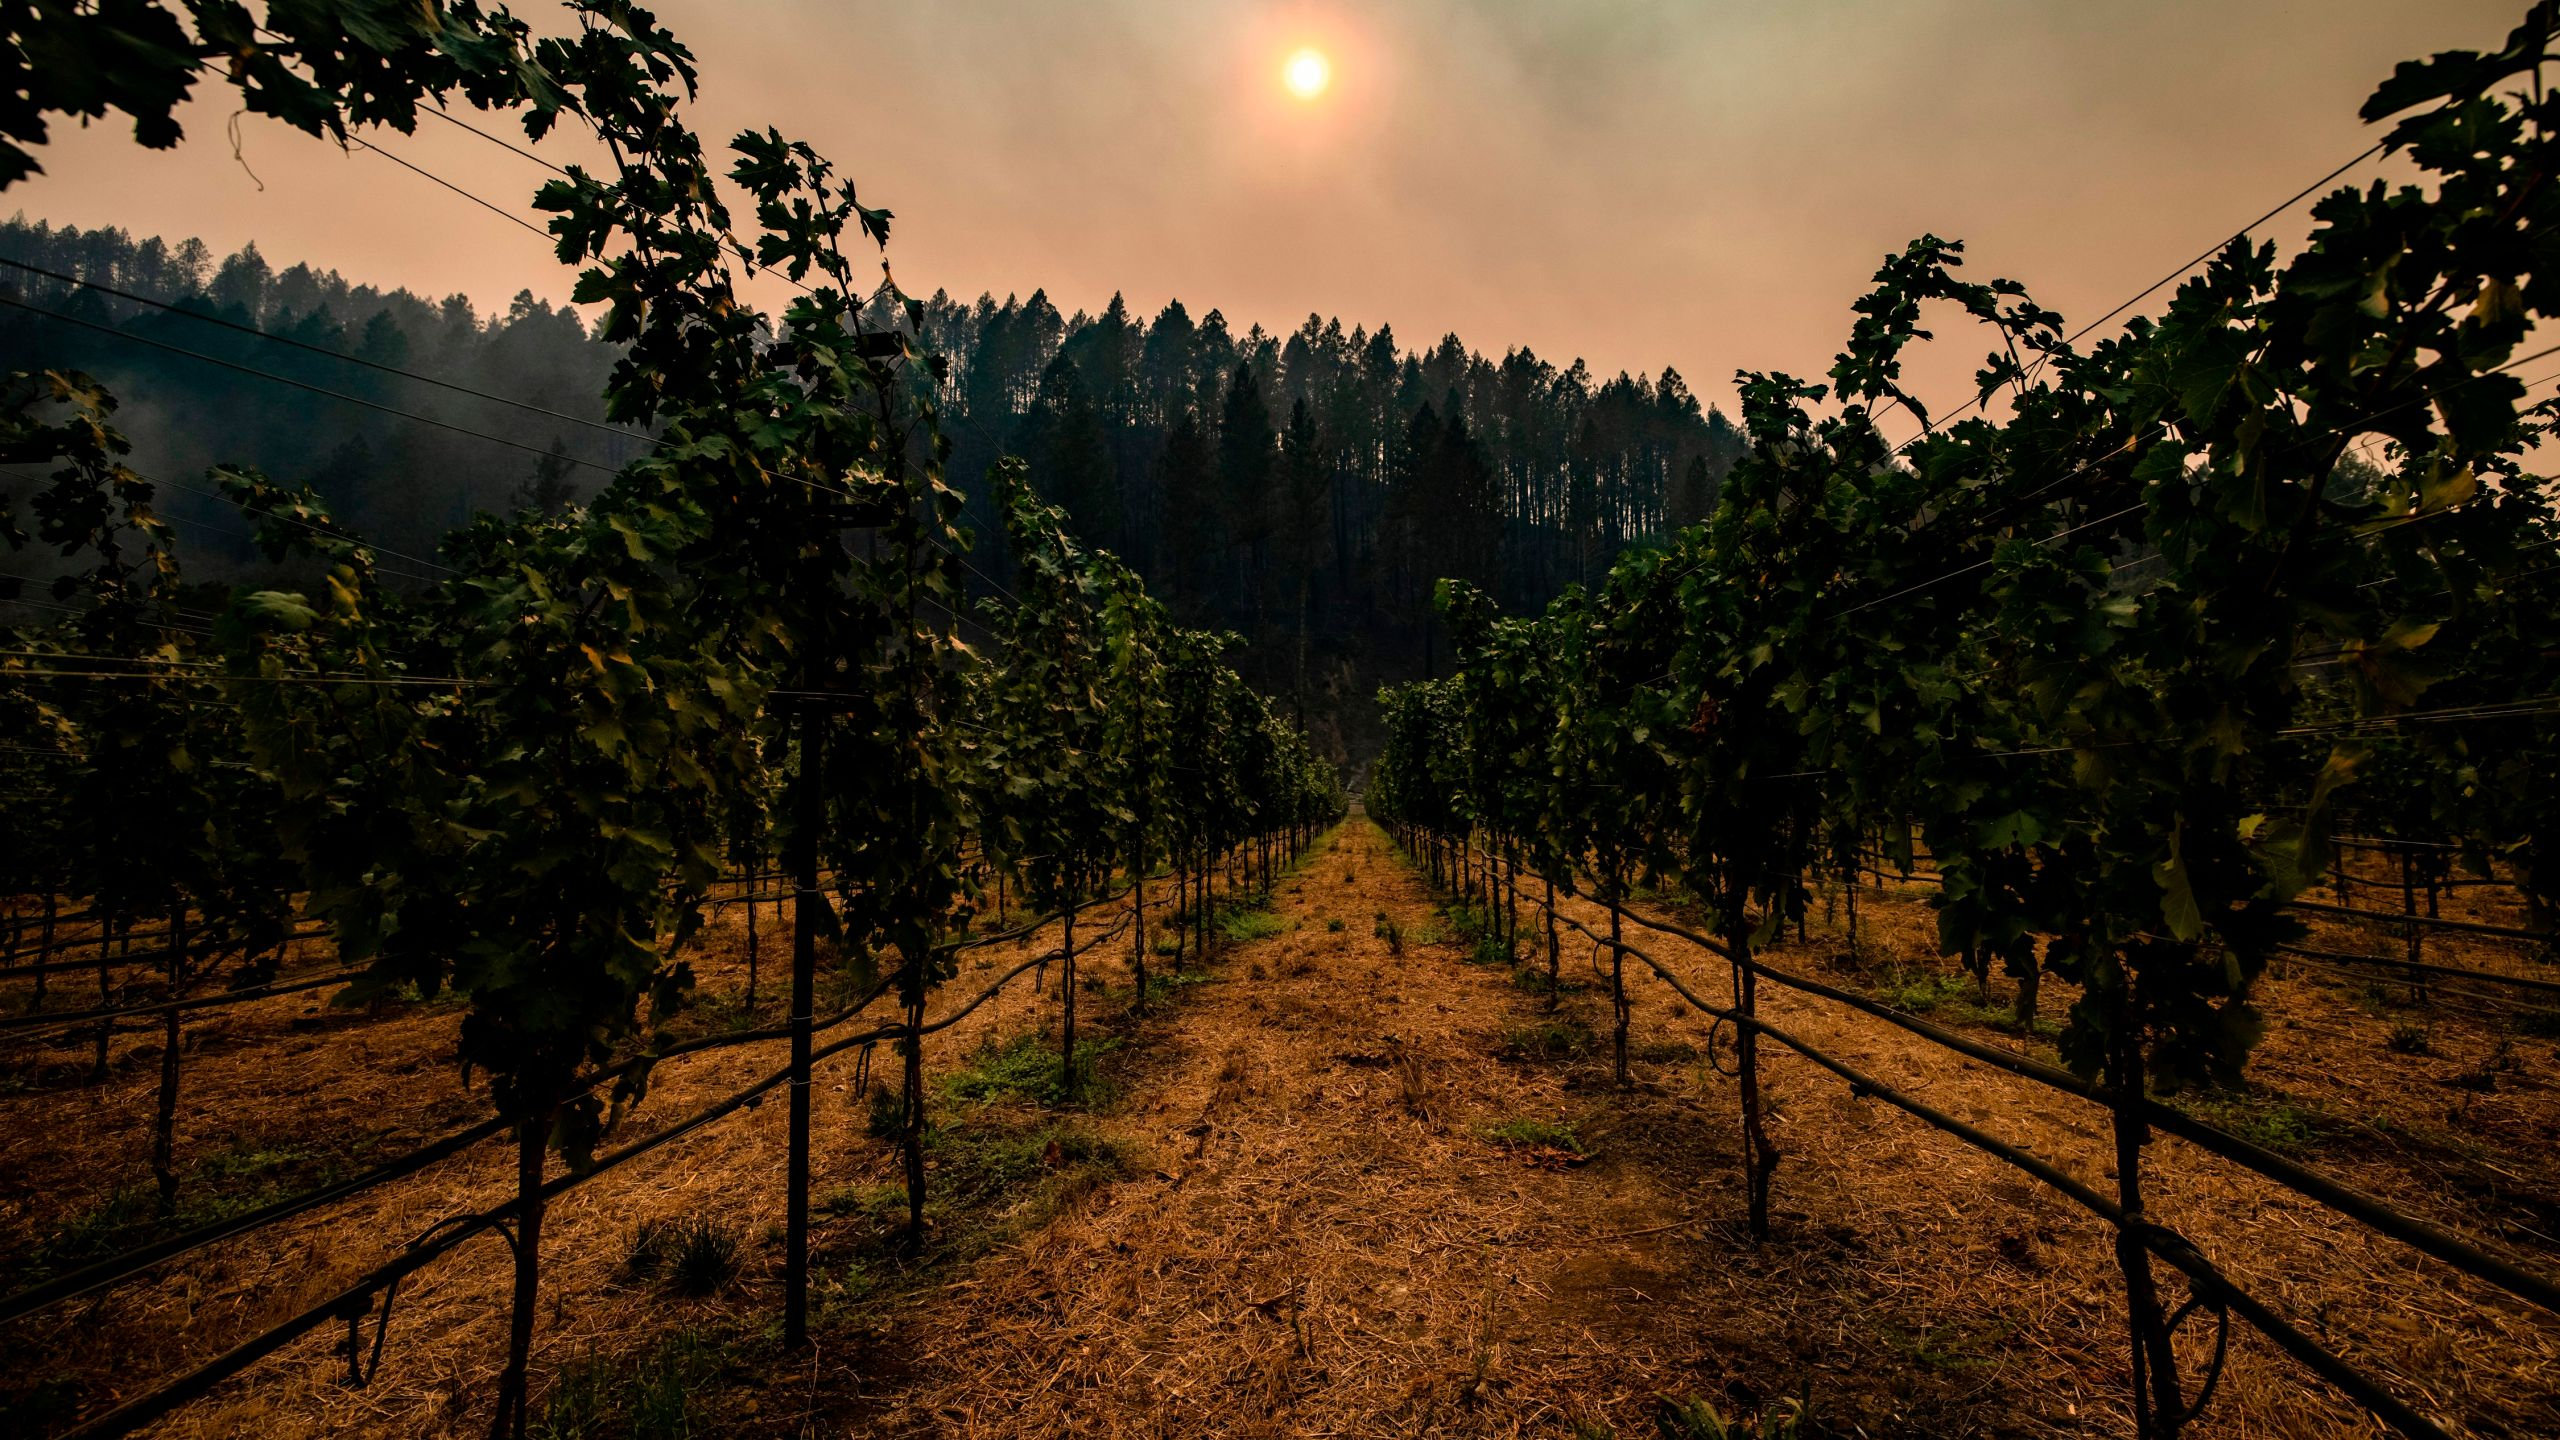 Smoke hangs amongst charred trees on the hillside behind a vineyard in Napa Valley on Sept. 28, 2020. (SAMUEL CORUM/AFP via Getty Images)